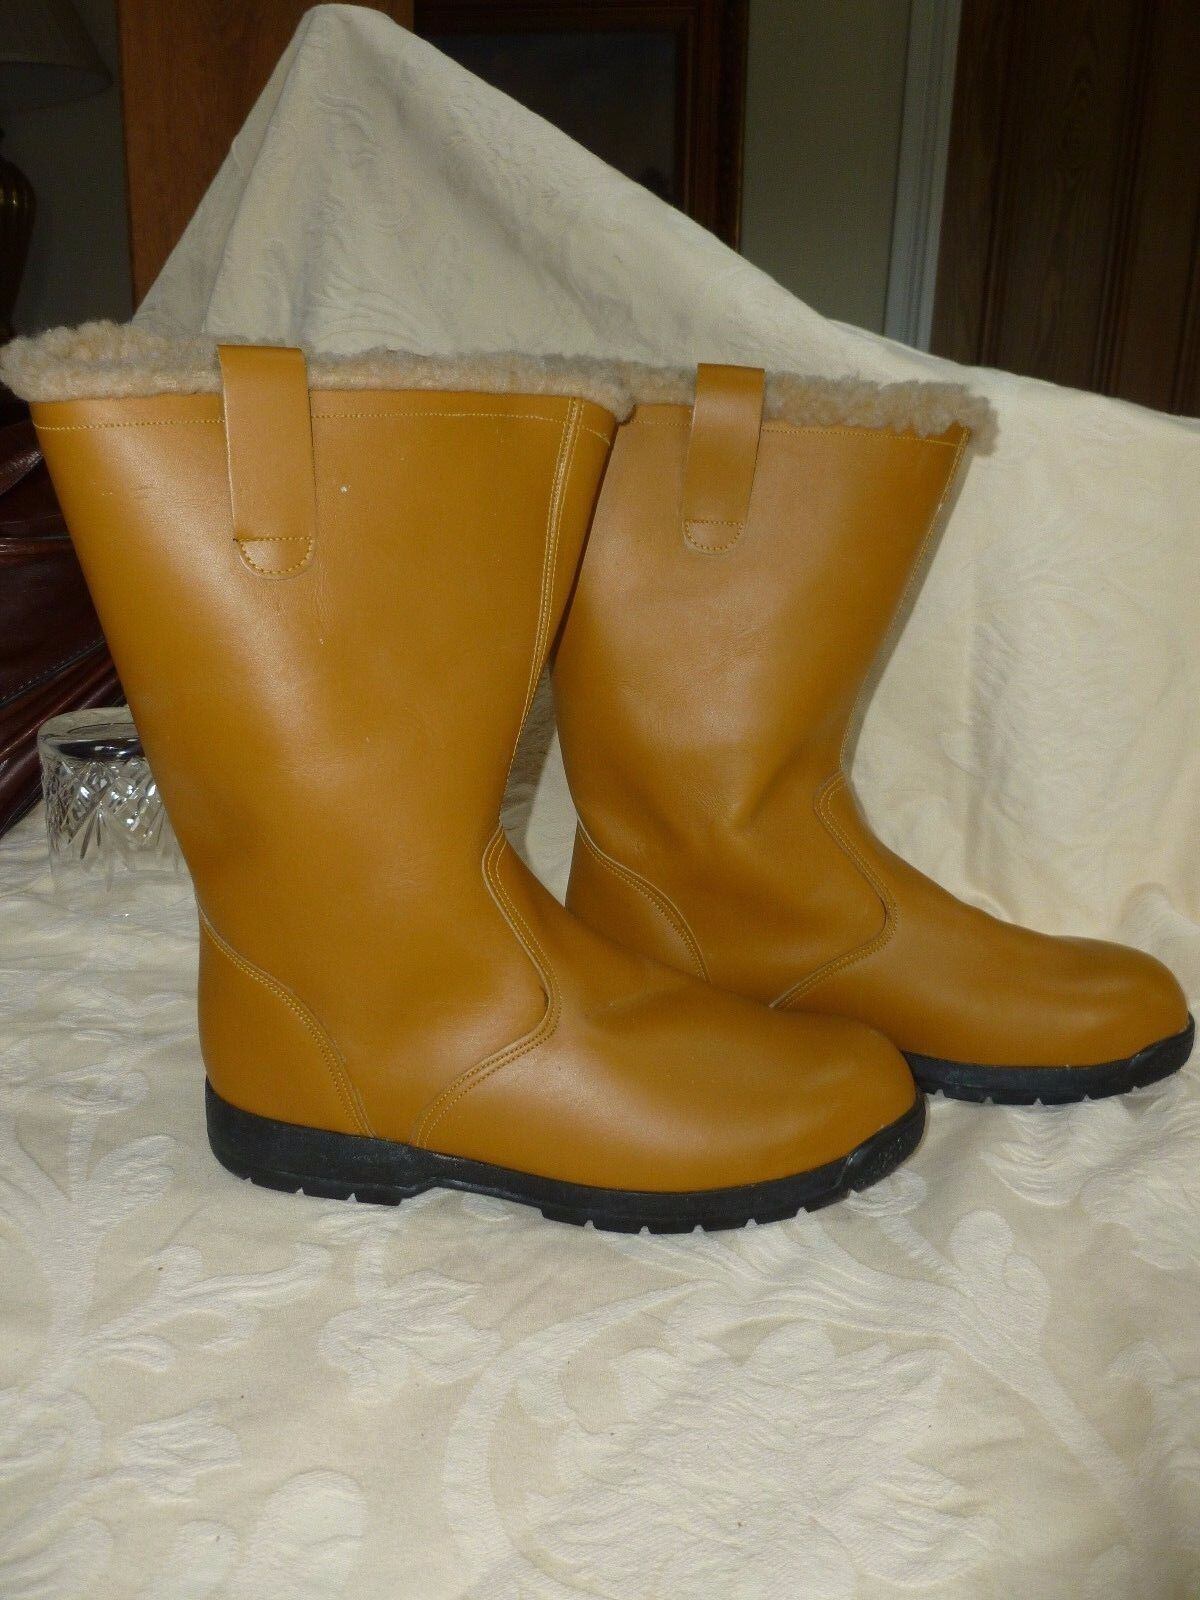 Equitector Lana Foderato in Pelle Yard stivali R RP  Made in England